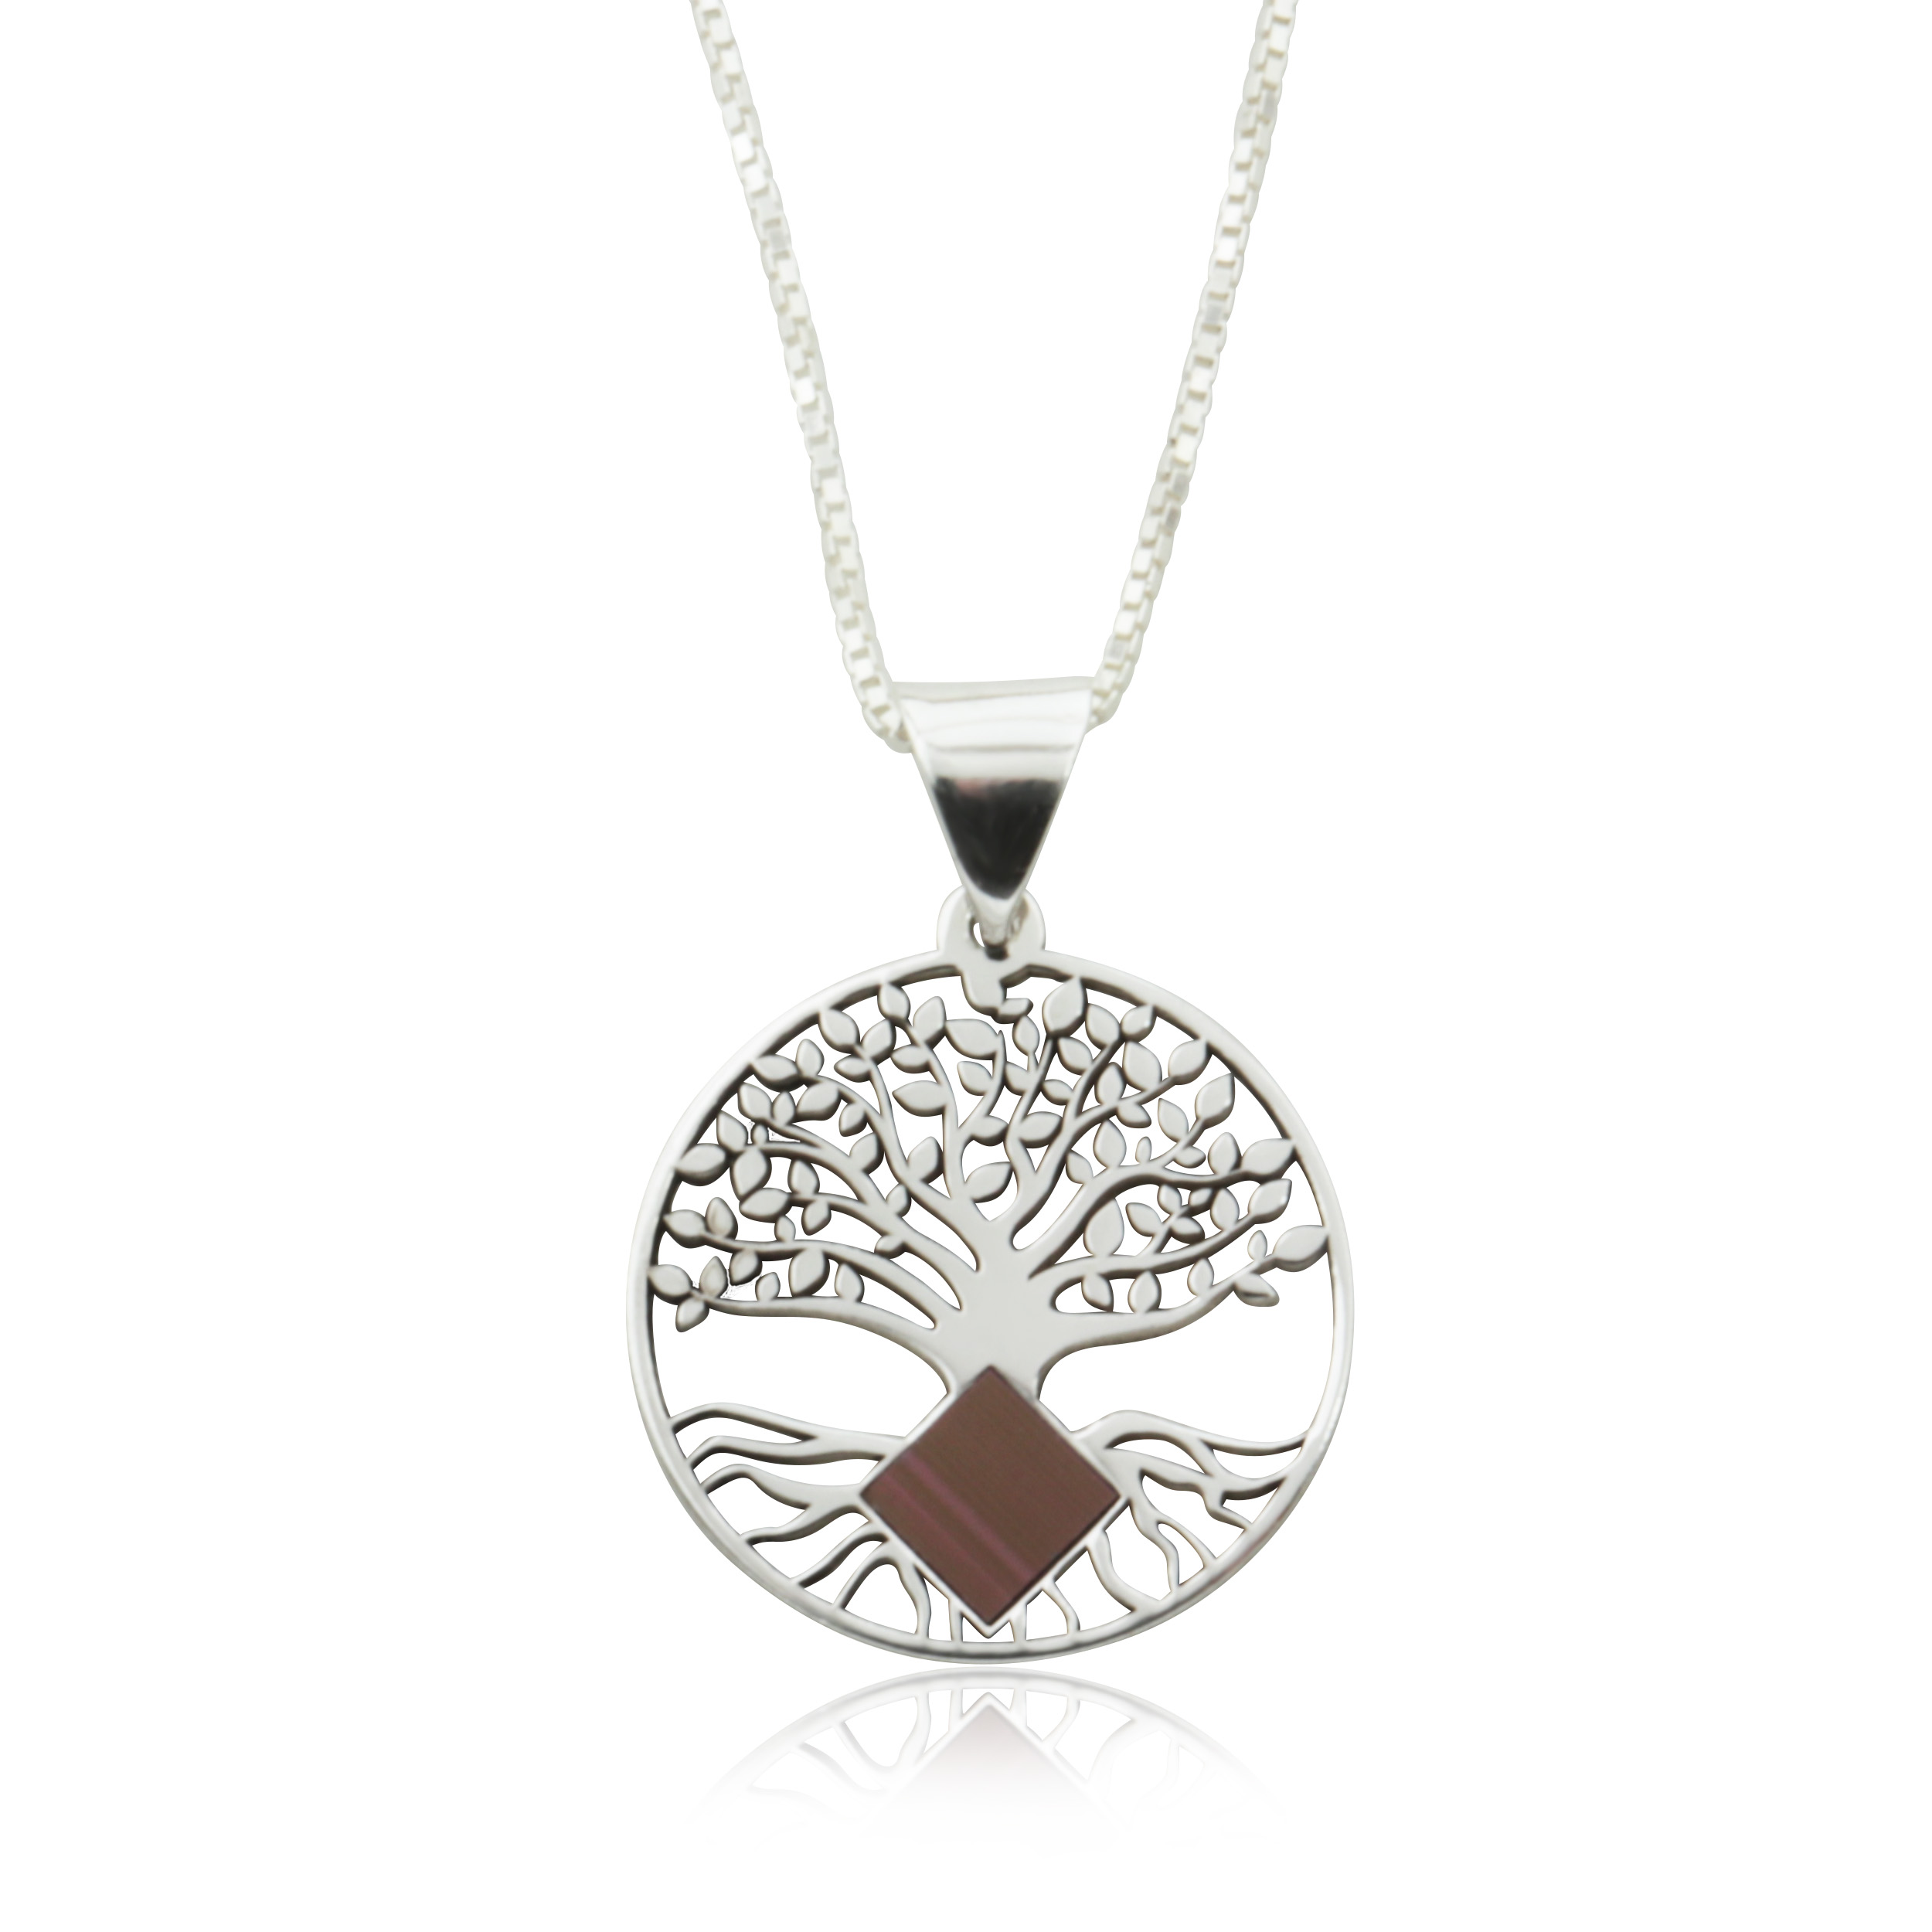 THE TREE OF LIFE NECKLACE NANO BIBLE